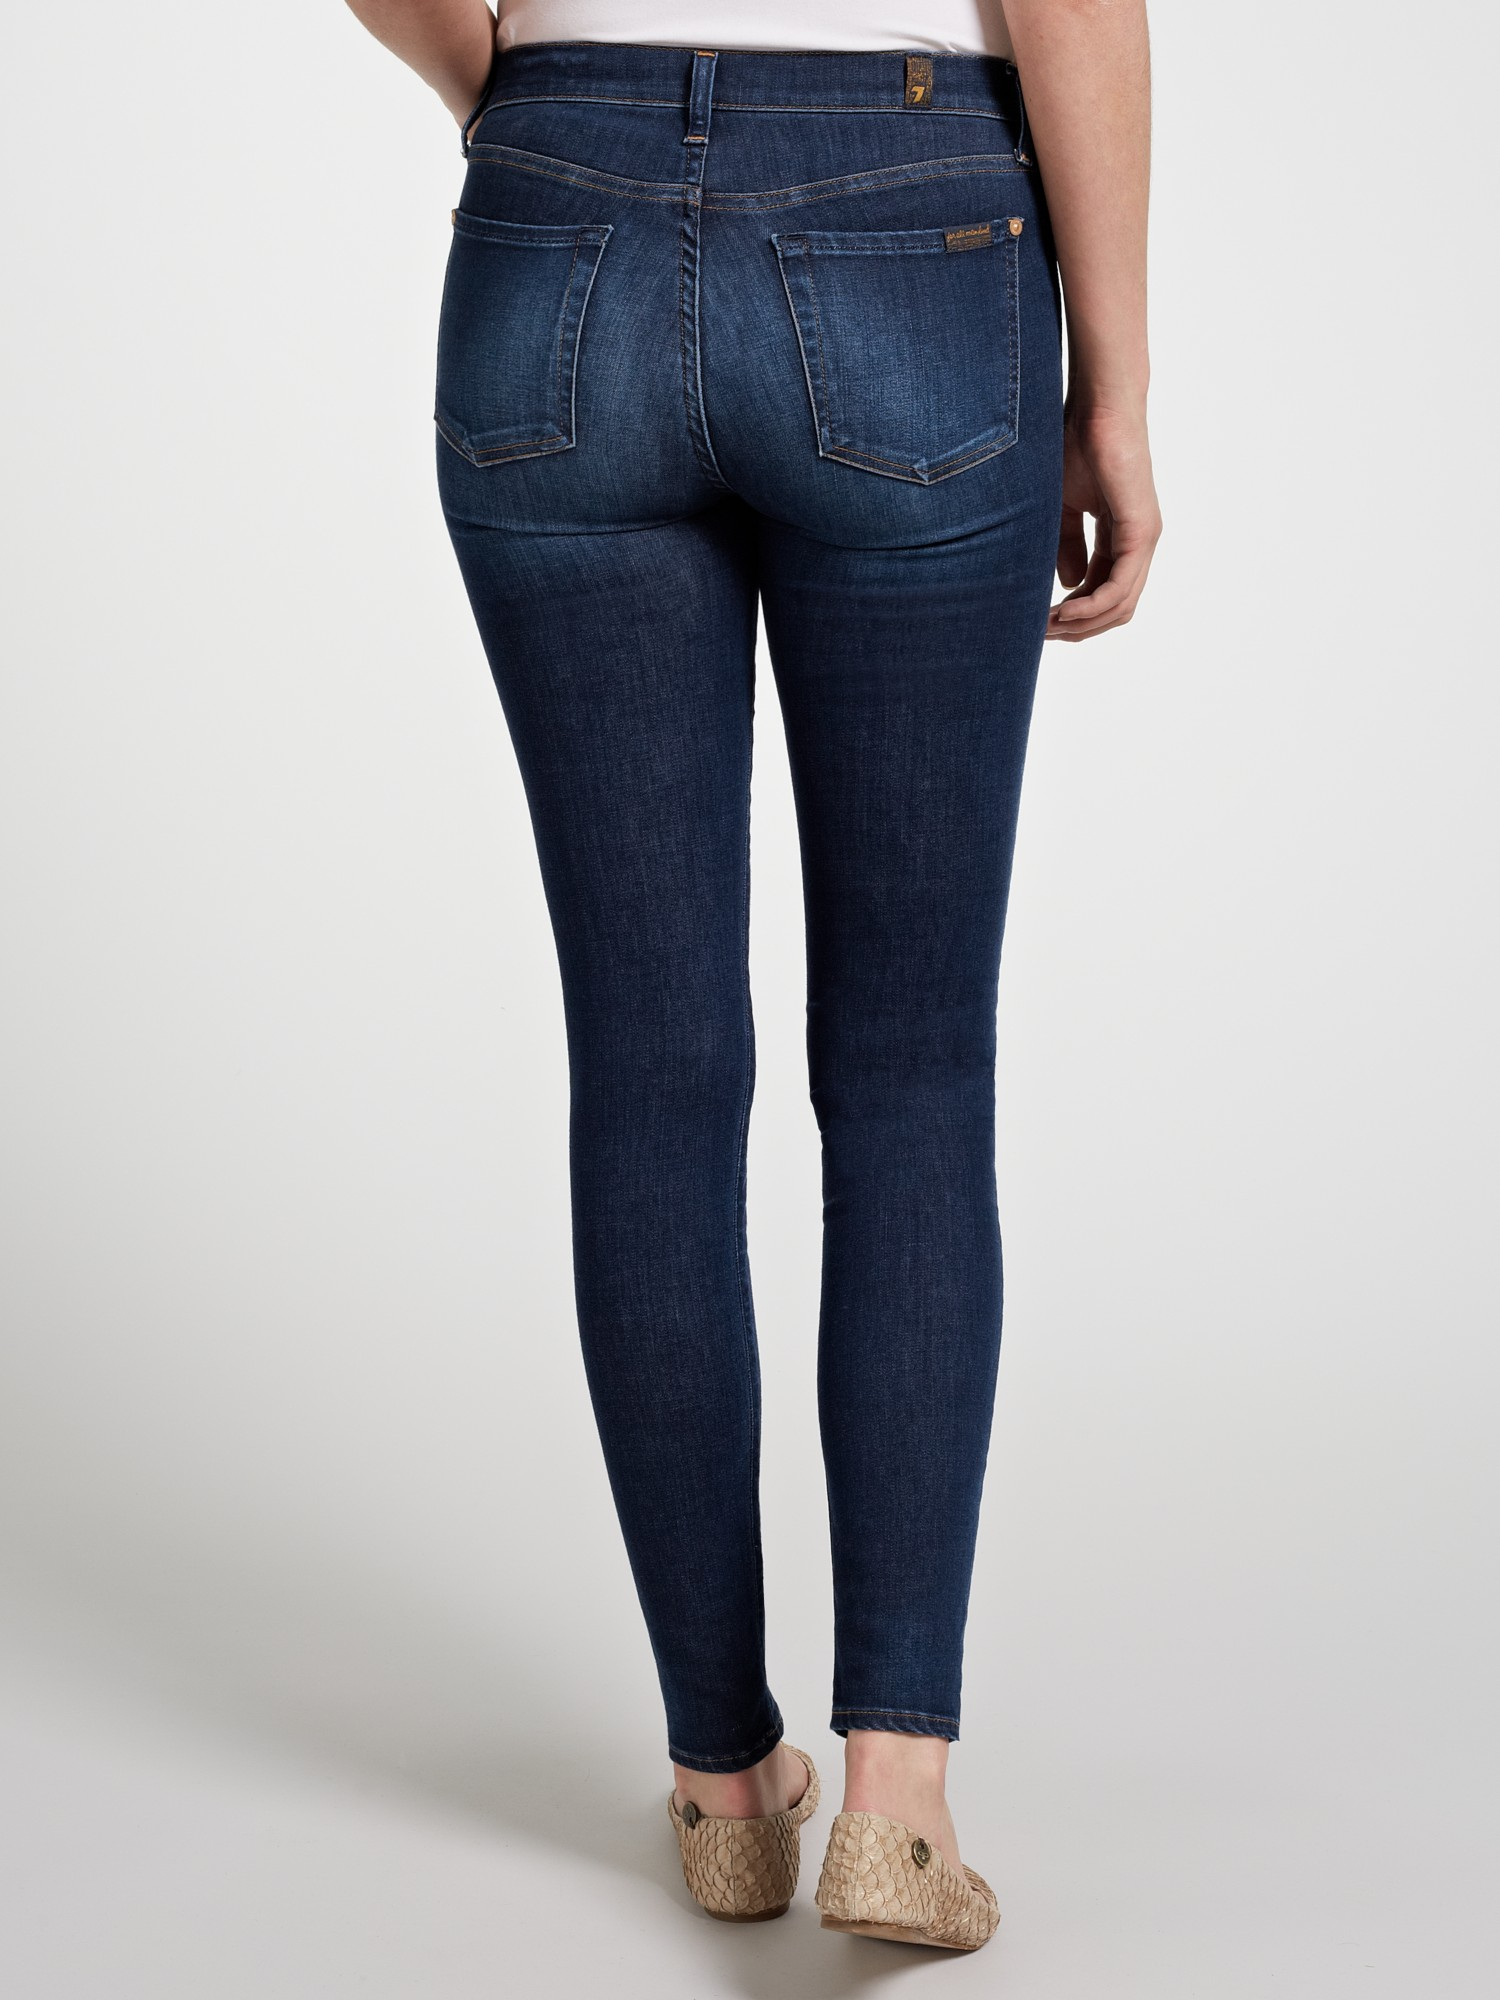 7 For All Mankind High-Waisted Skinny Jeans in Blue